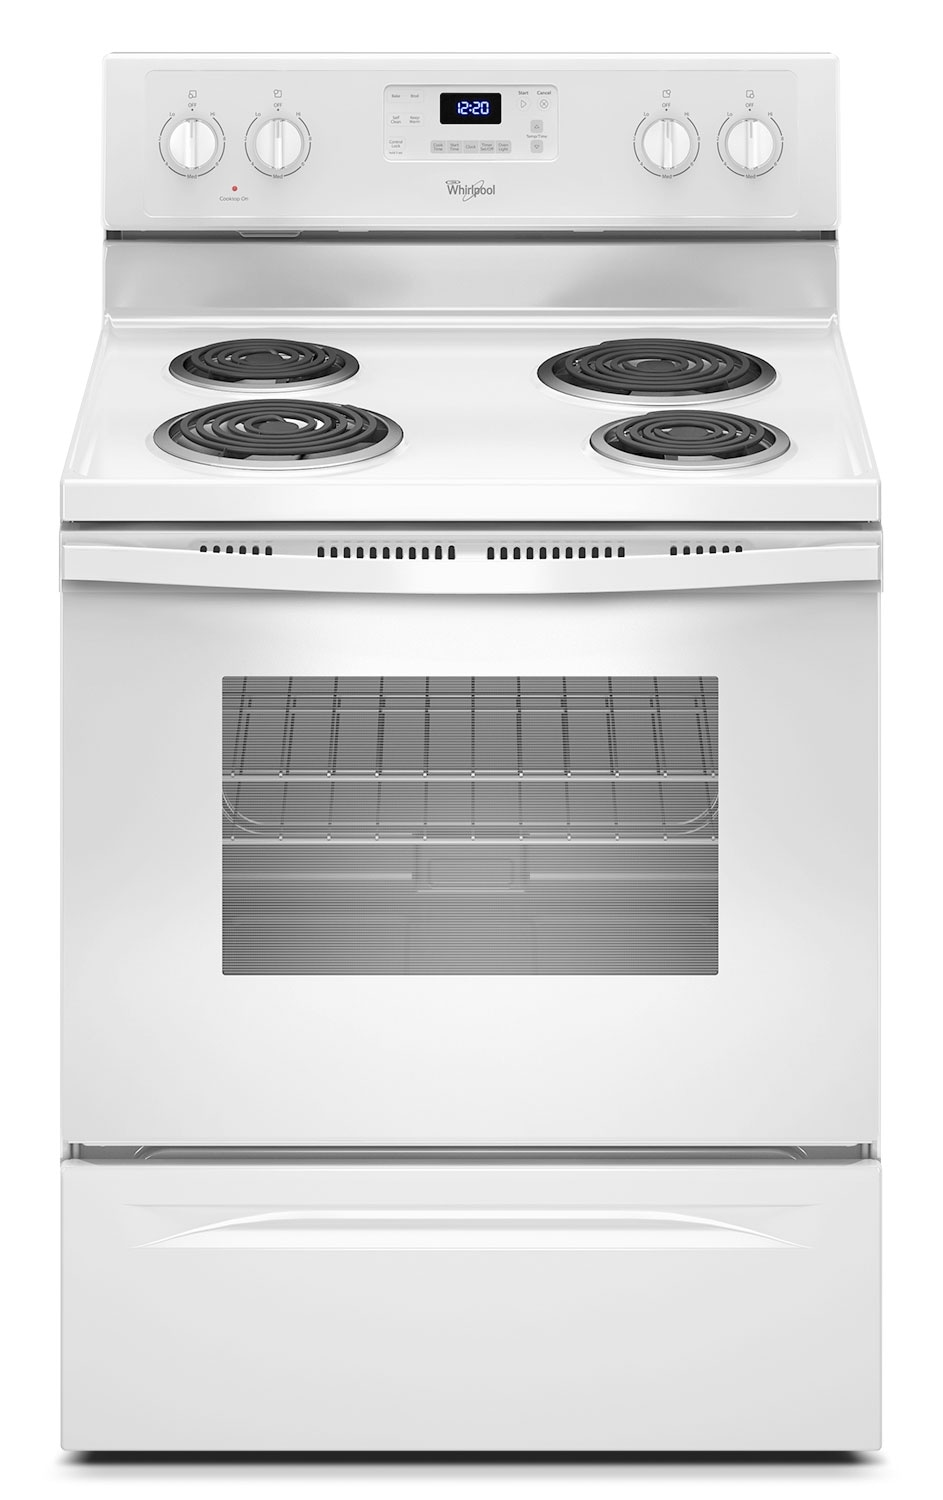 Whirlpool 4.8 Cu. Ft. Electric Range with AccuBake® System - White